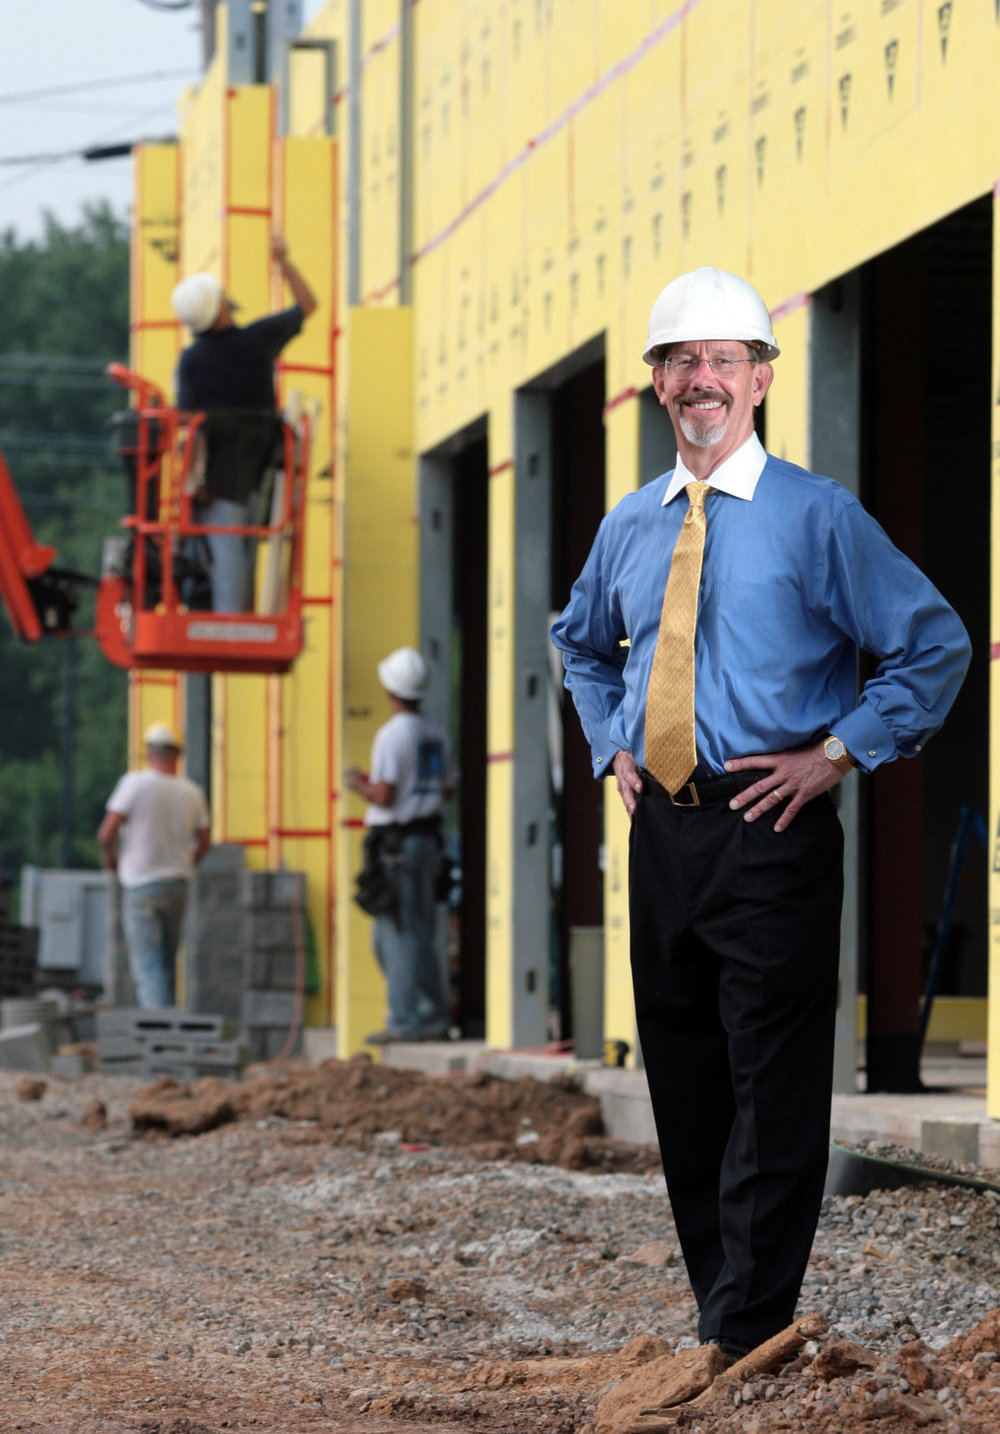 Construction attorney R. Loy Waldrop Jr. is shown at the Sequoyah Limited building site for Campbell Station Center on Wednesday, August 8, 2007. (Photography by Chad Greene)